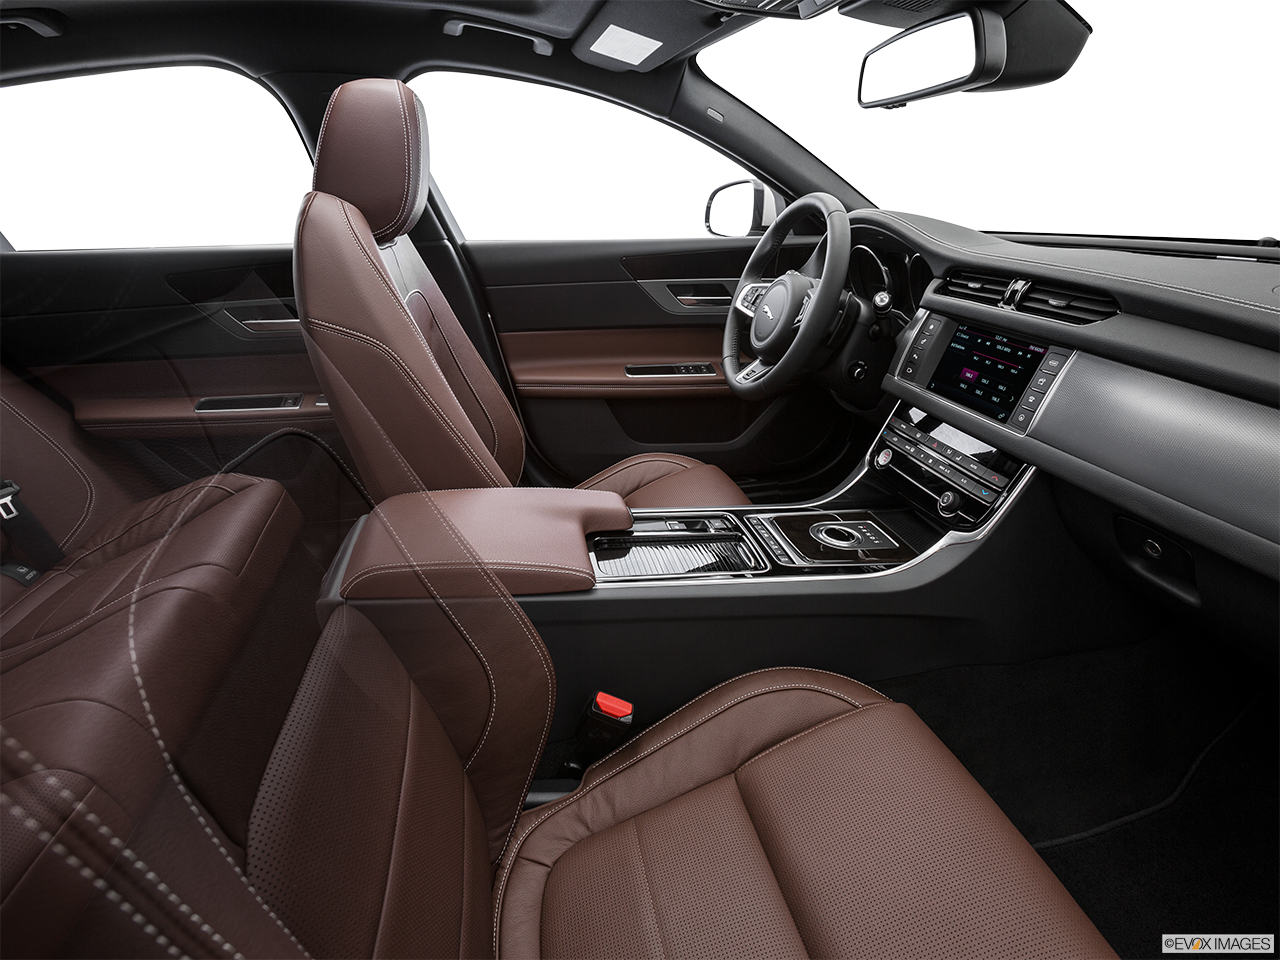 Interior View Of 2016 Jaguar XF in Los Angeles